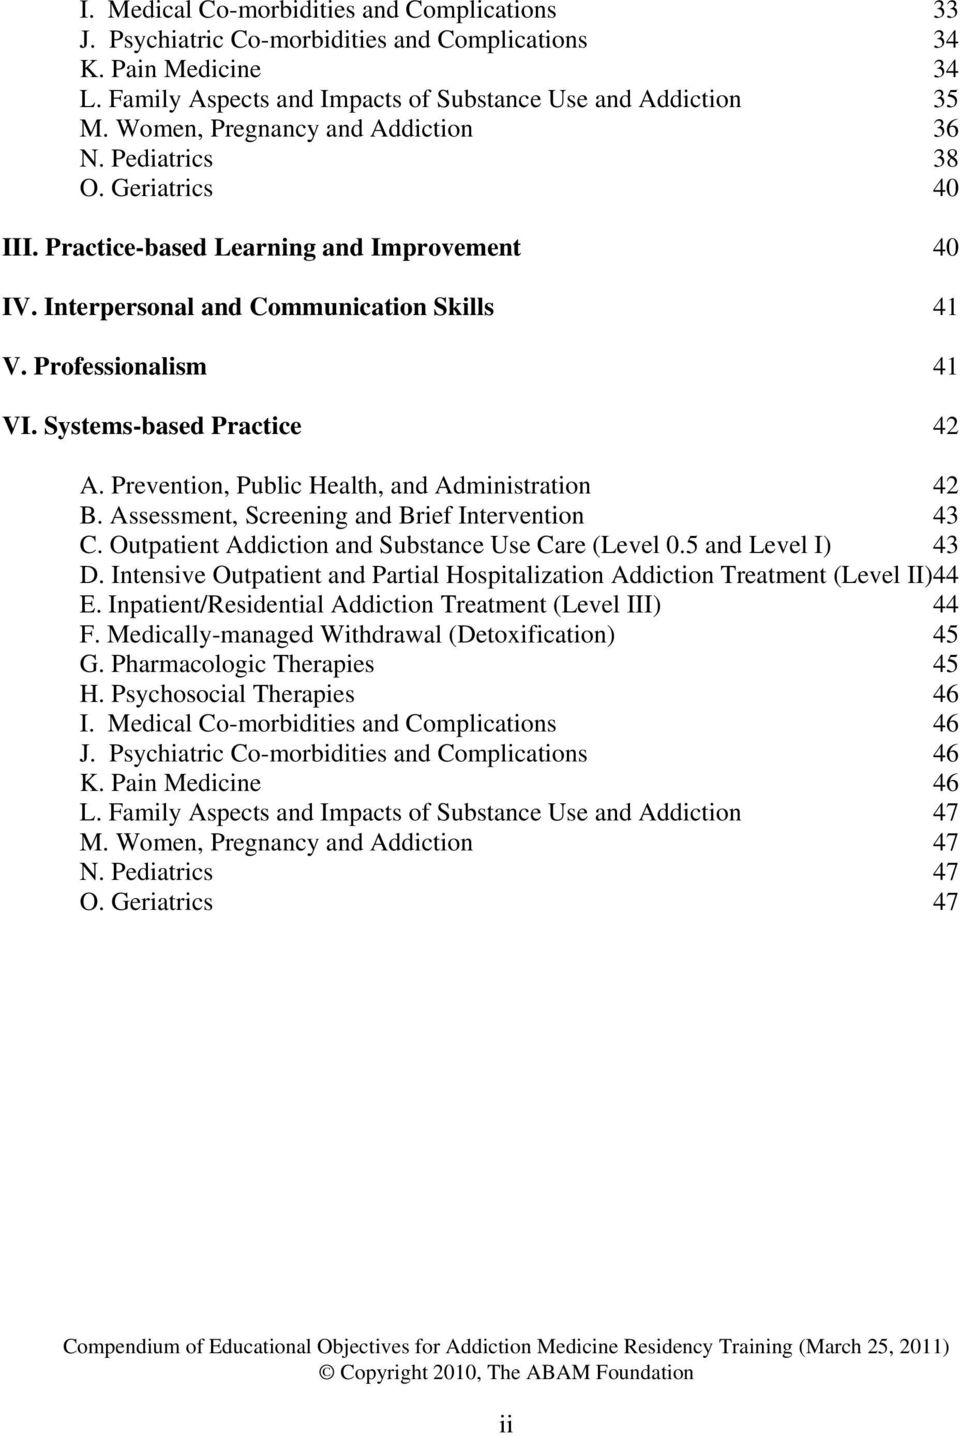 Systems-based Practice 42 A. Prevention, Public Health, and Administration 42 B. Assessment, Screening and Brief Intervention 43 C. Outpatient Addiction and Substance Use Care (Level 0.